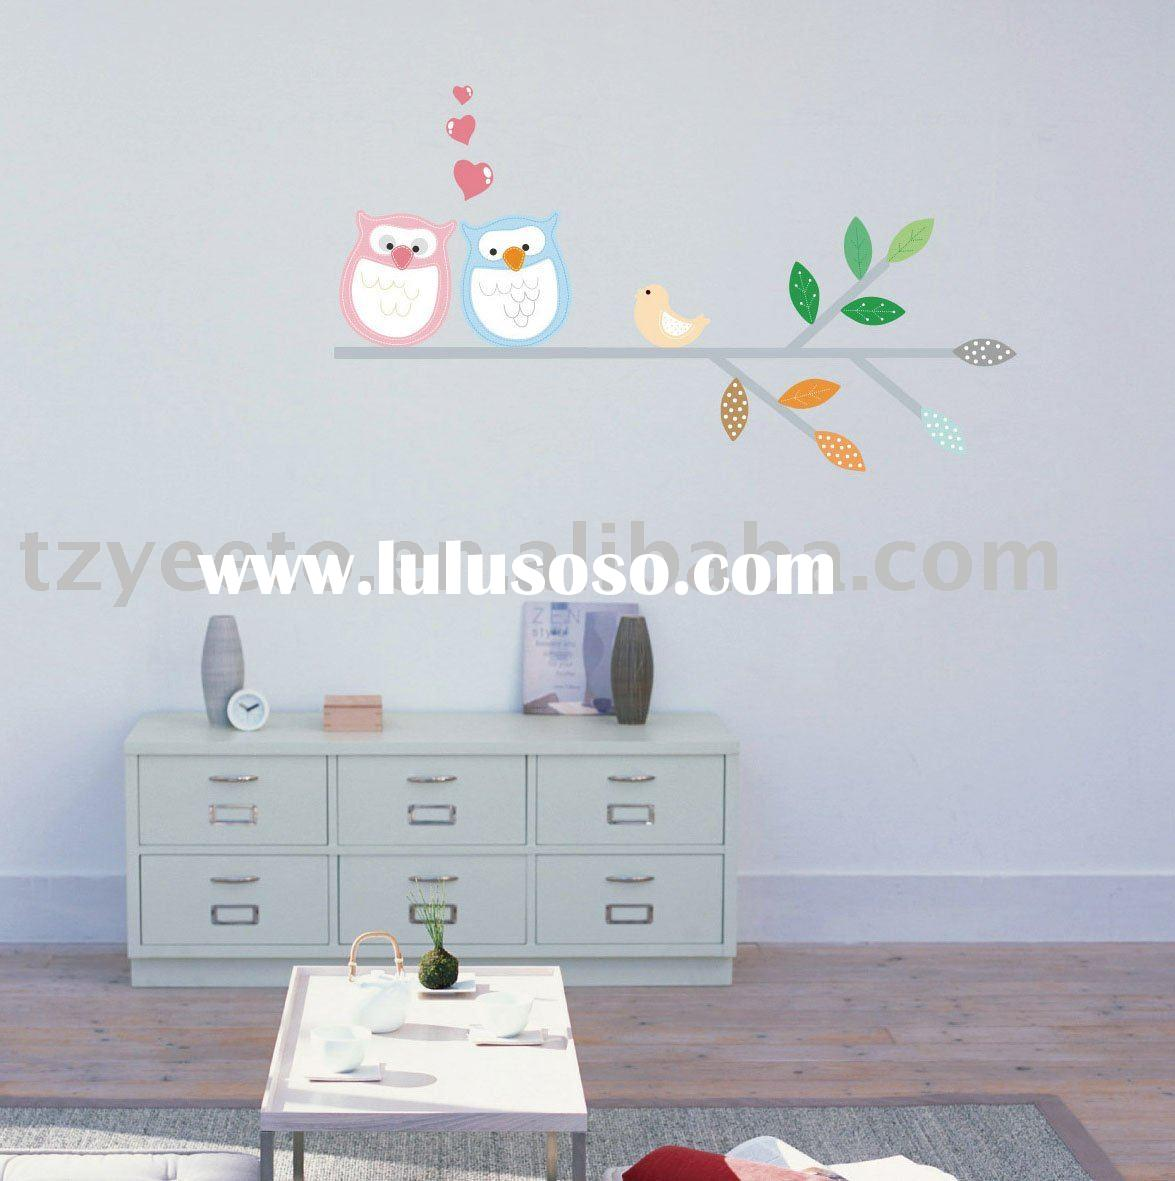 removable vinyl wall decals wall covers giant family tree wall sticker vinyl art home decals room